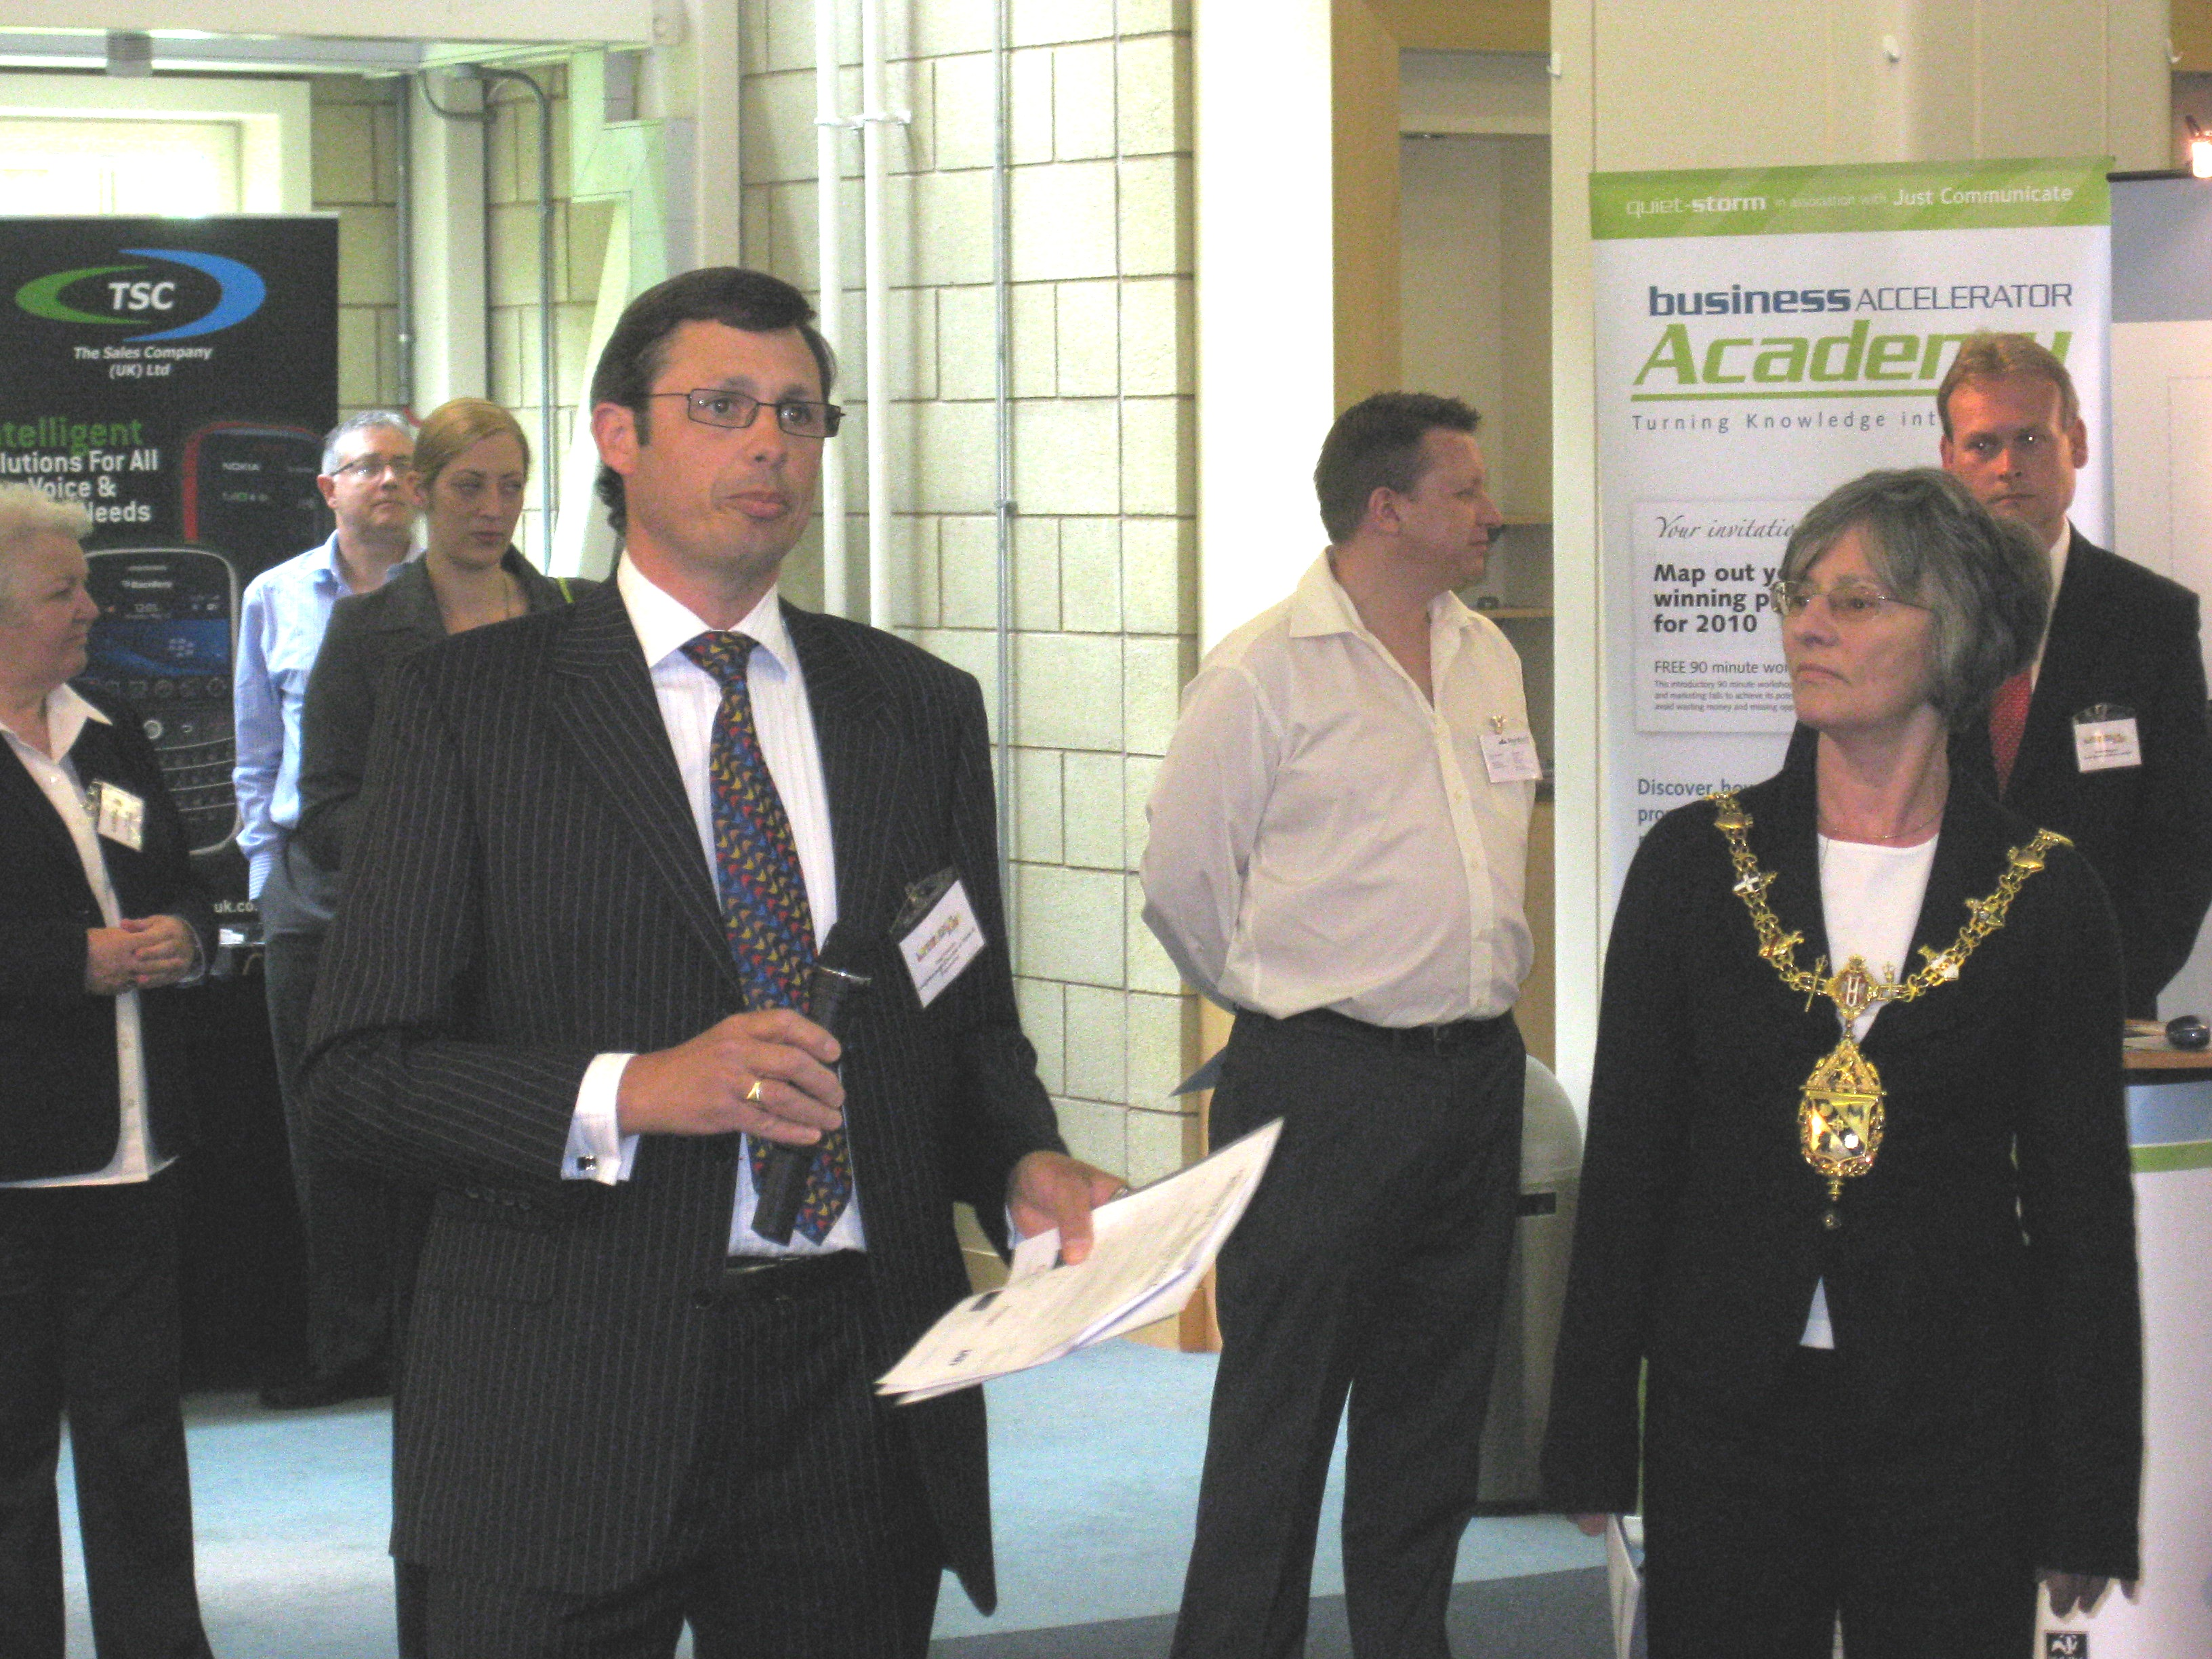 Paul Fileman, President of Loughborough Chamber of Trade & Commerce introduces the Mayor, Councillor Jill Vincent.